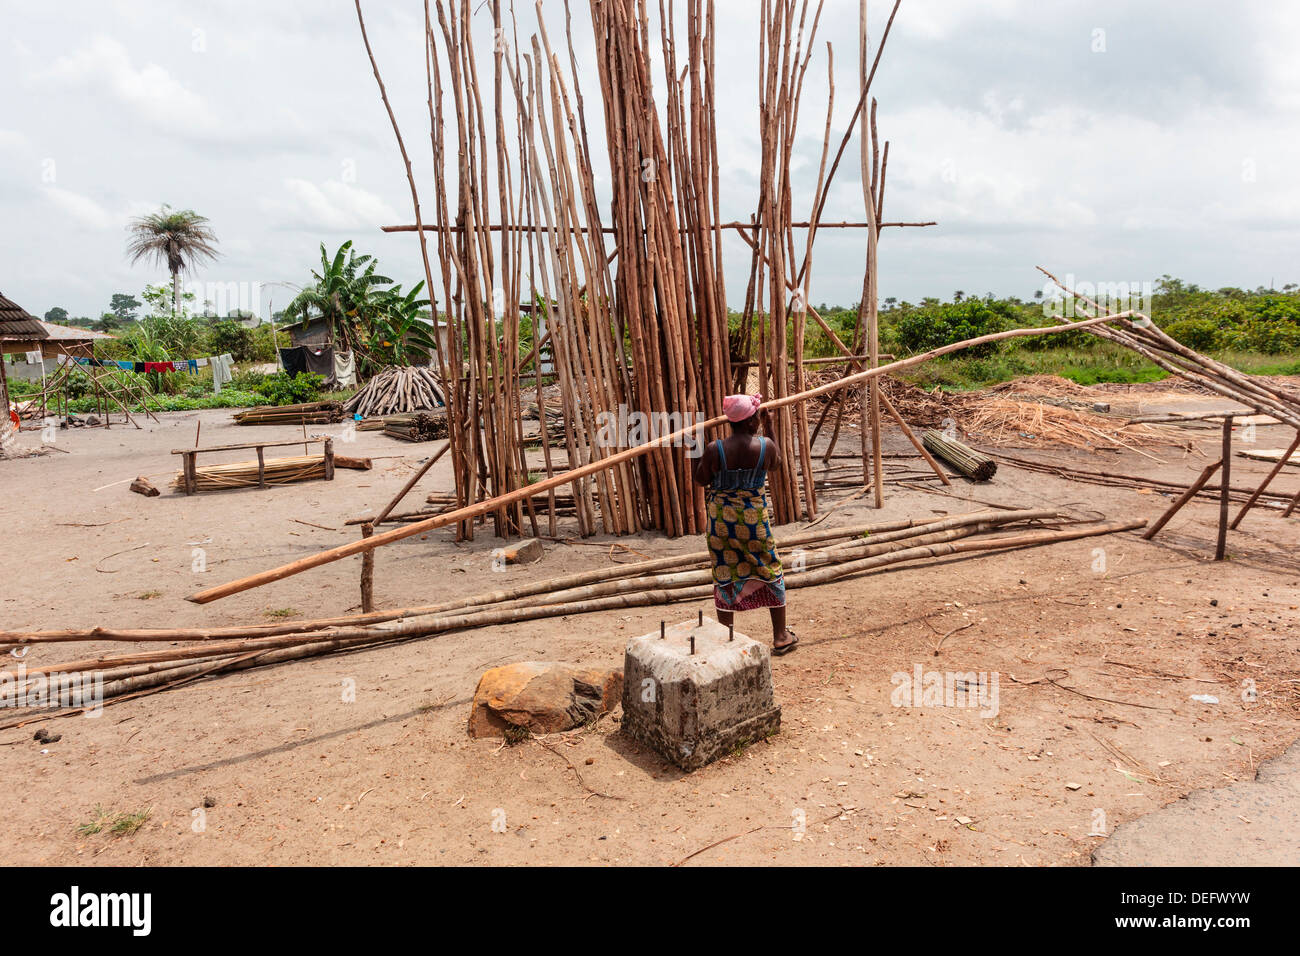 Africa, Liberia, Monrovia. Woman lifting wood to use as structure for house. - Stock Image